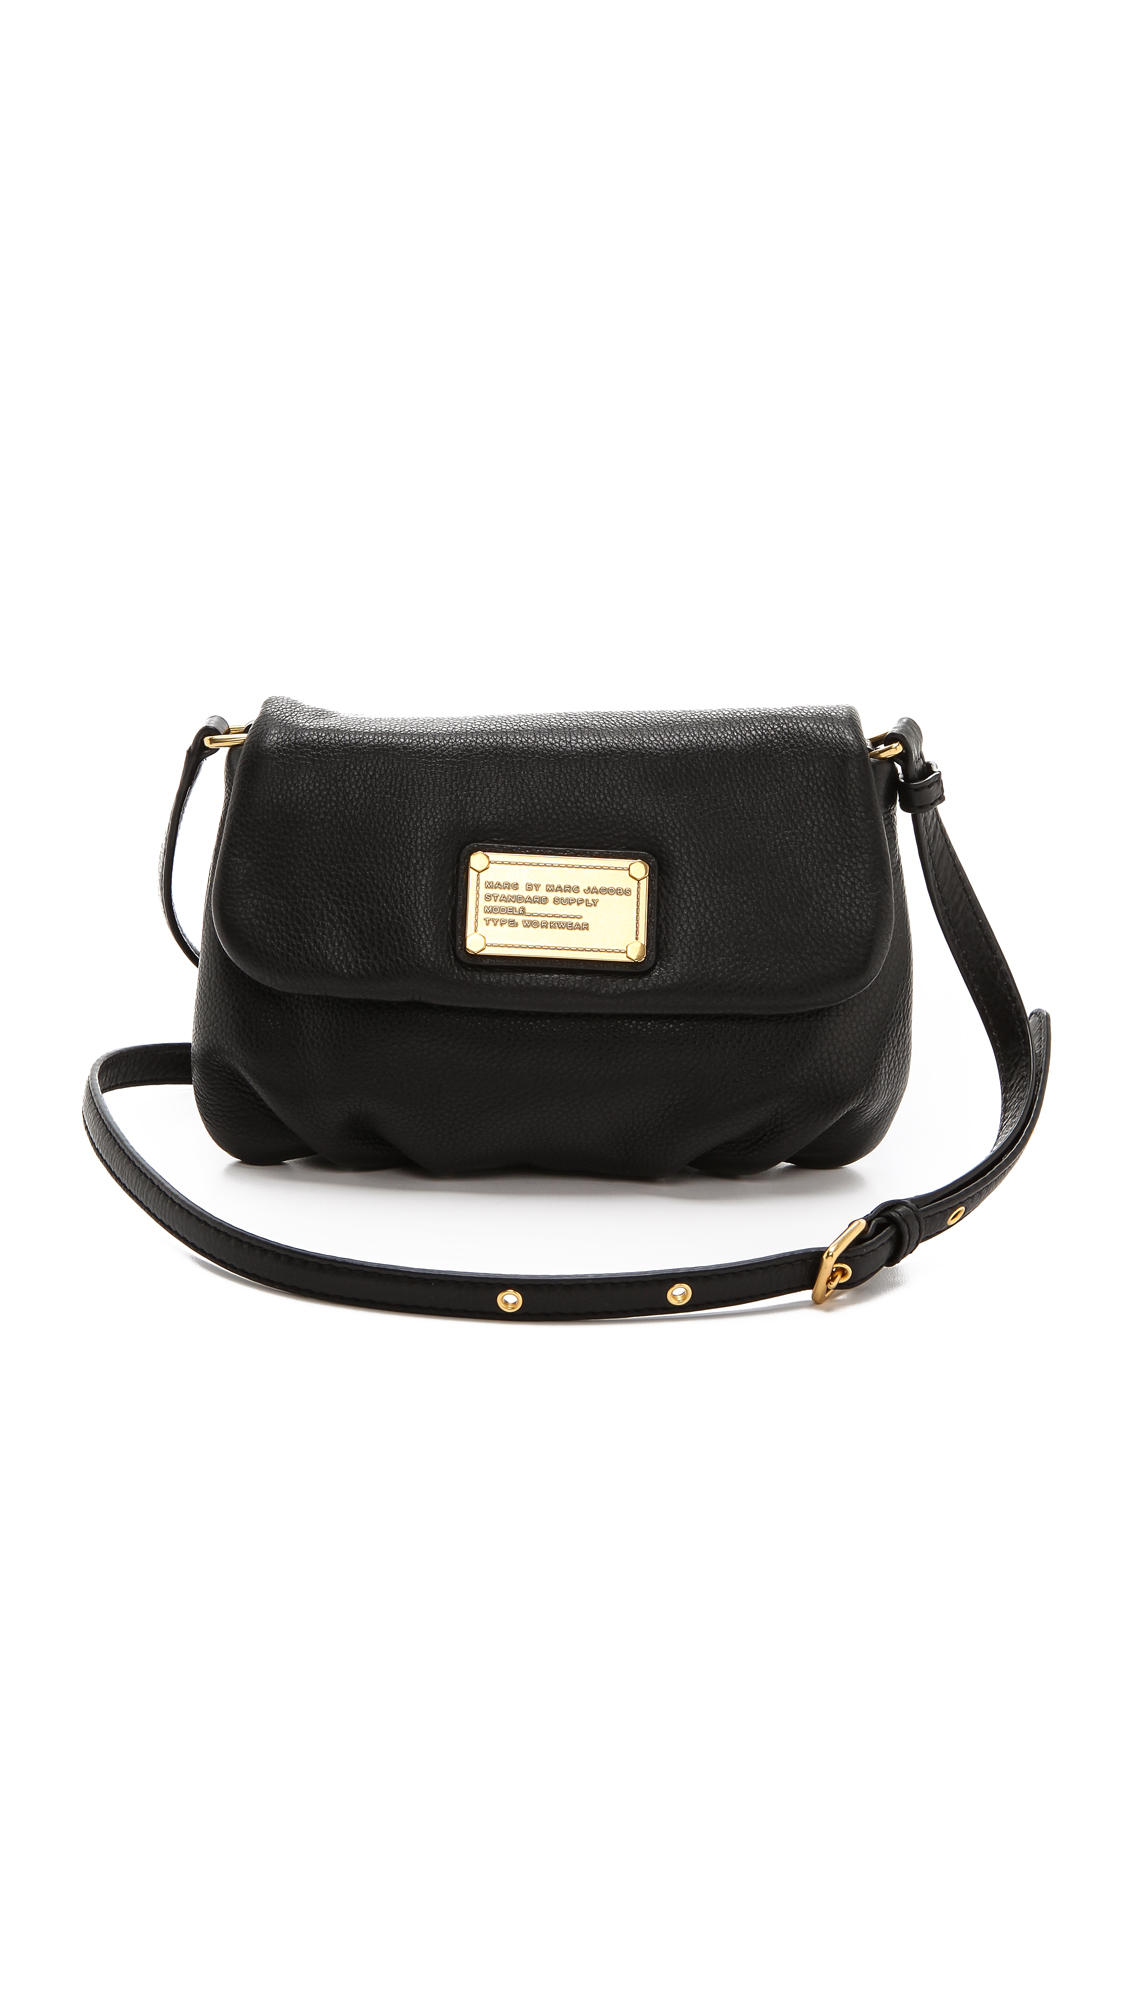 Marc by marc jacobs Classic Q Percy Leather Cross-Body Bag in Black | Lyst